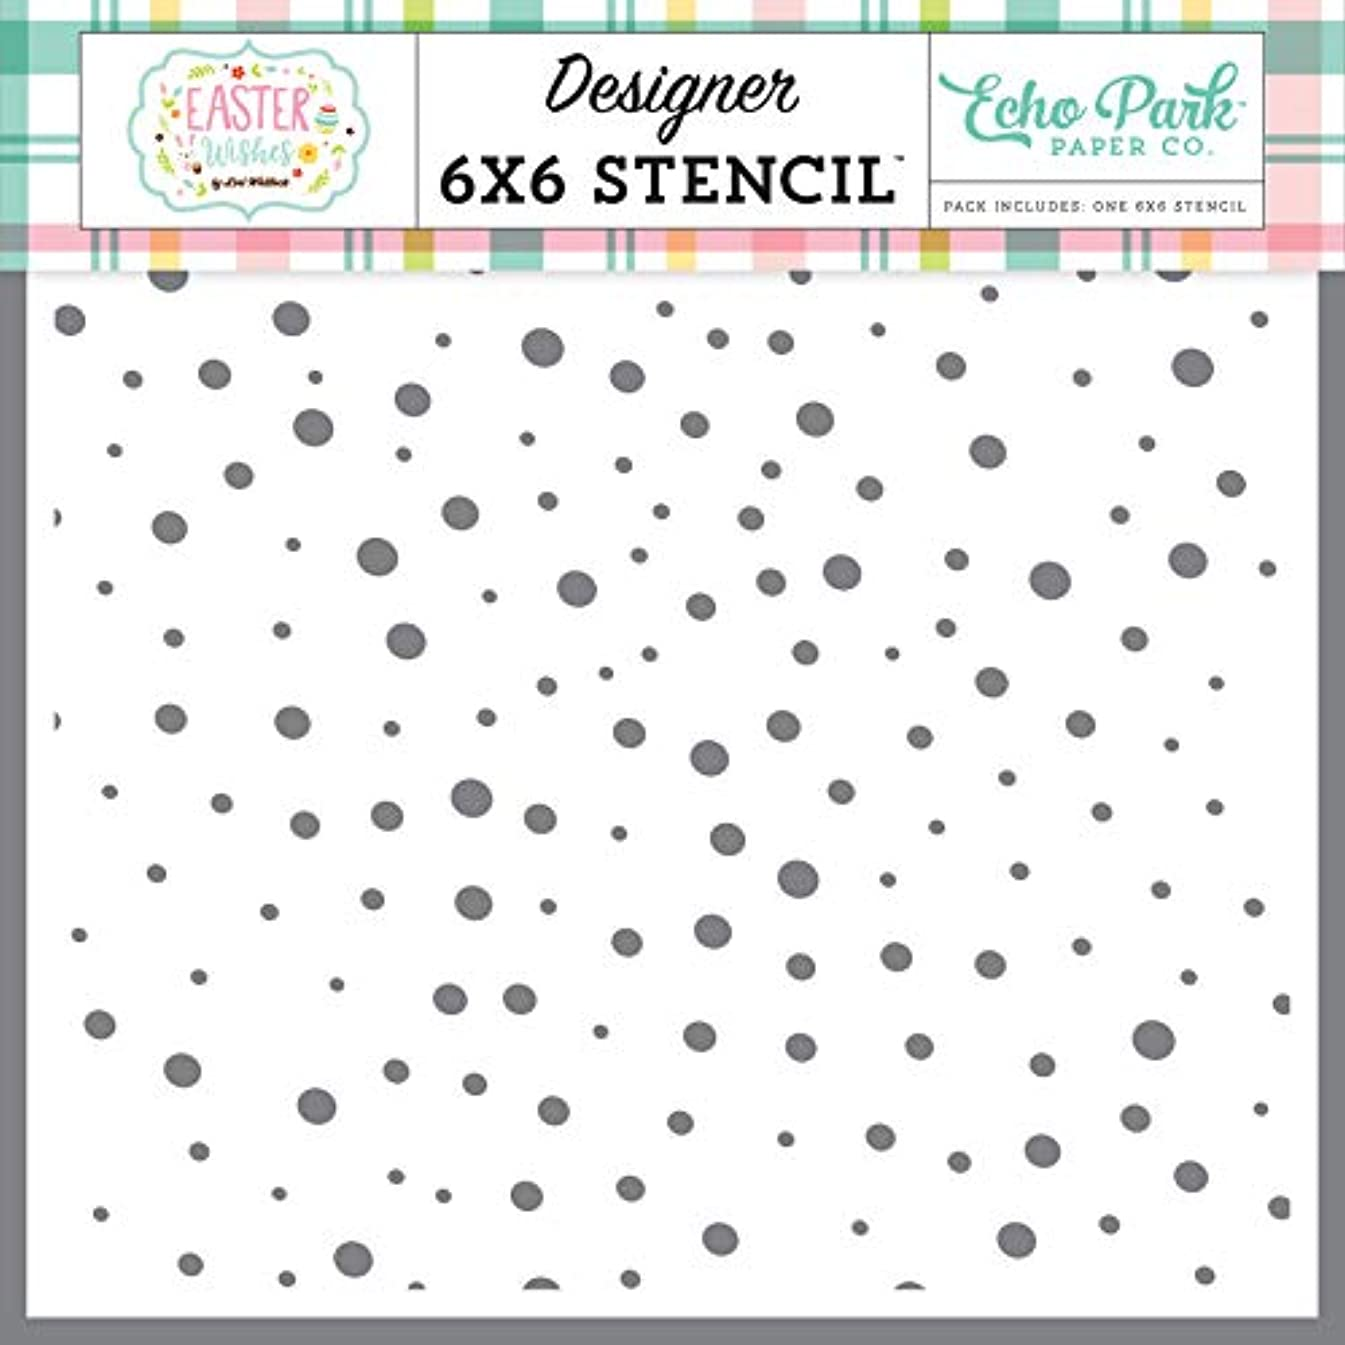 Echo Park Paper Company Speckled Egg Stencil, Pink, Yellow, Teal, Green, Brown, Orange